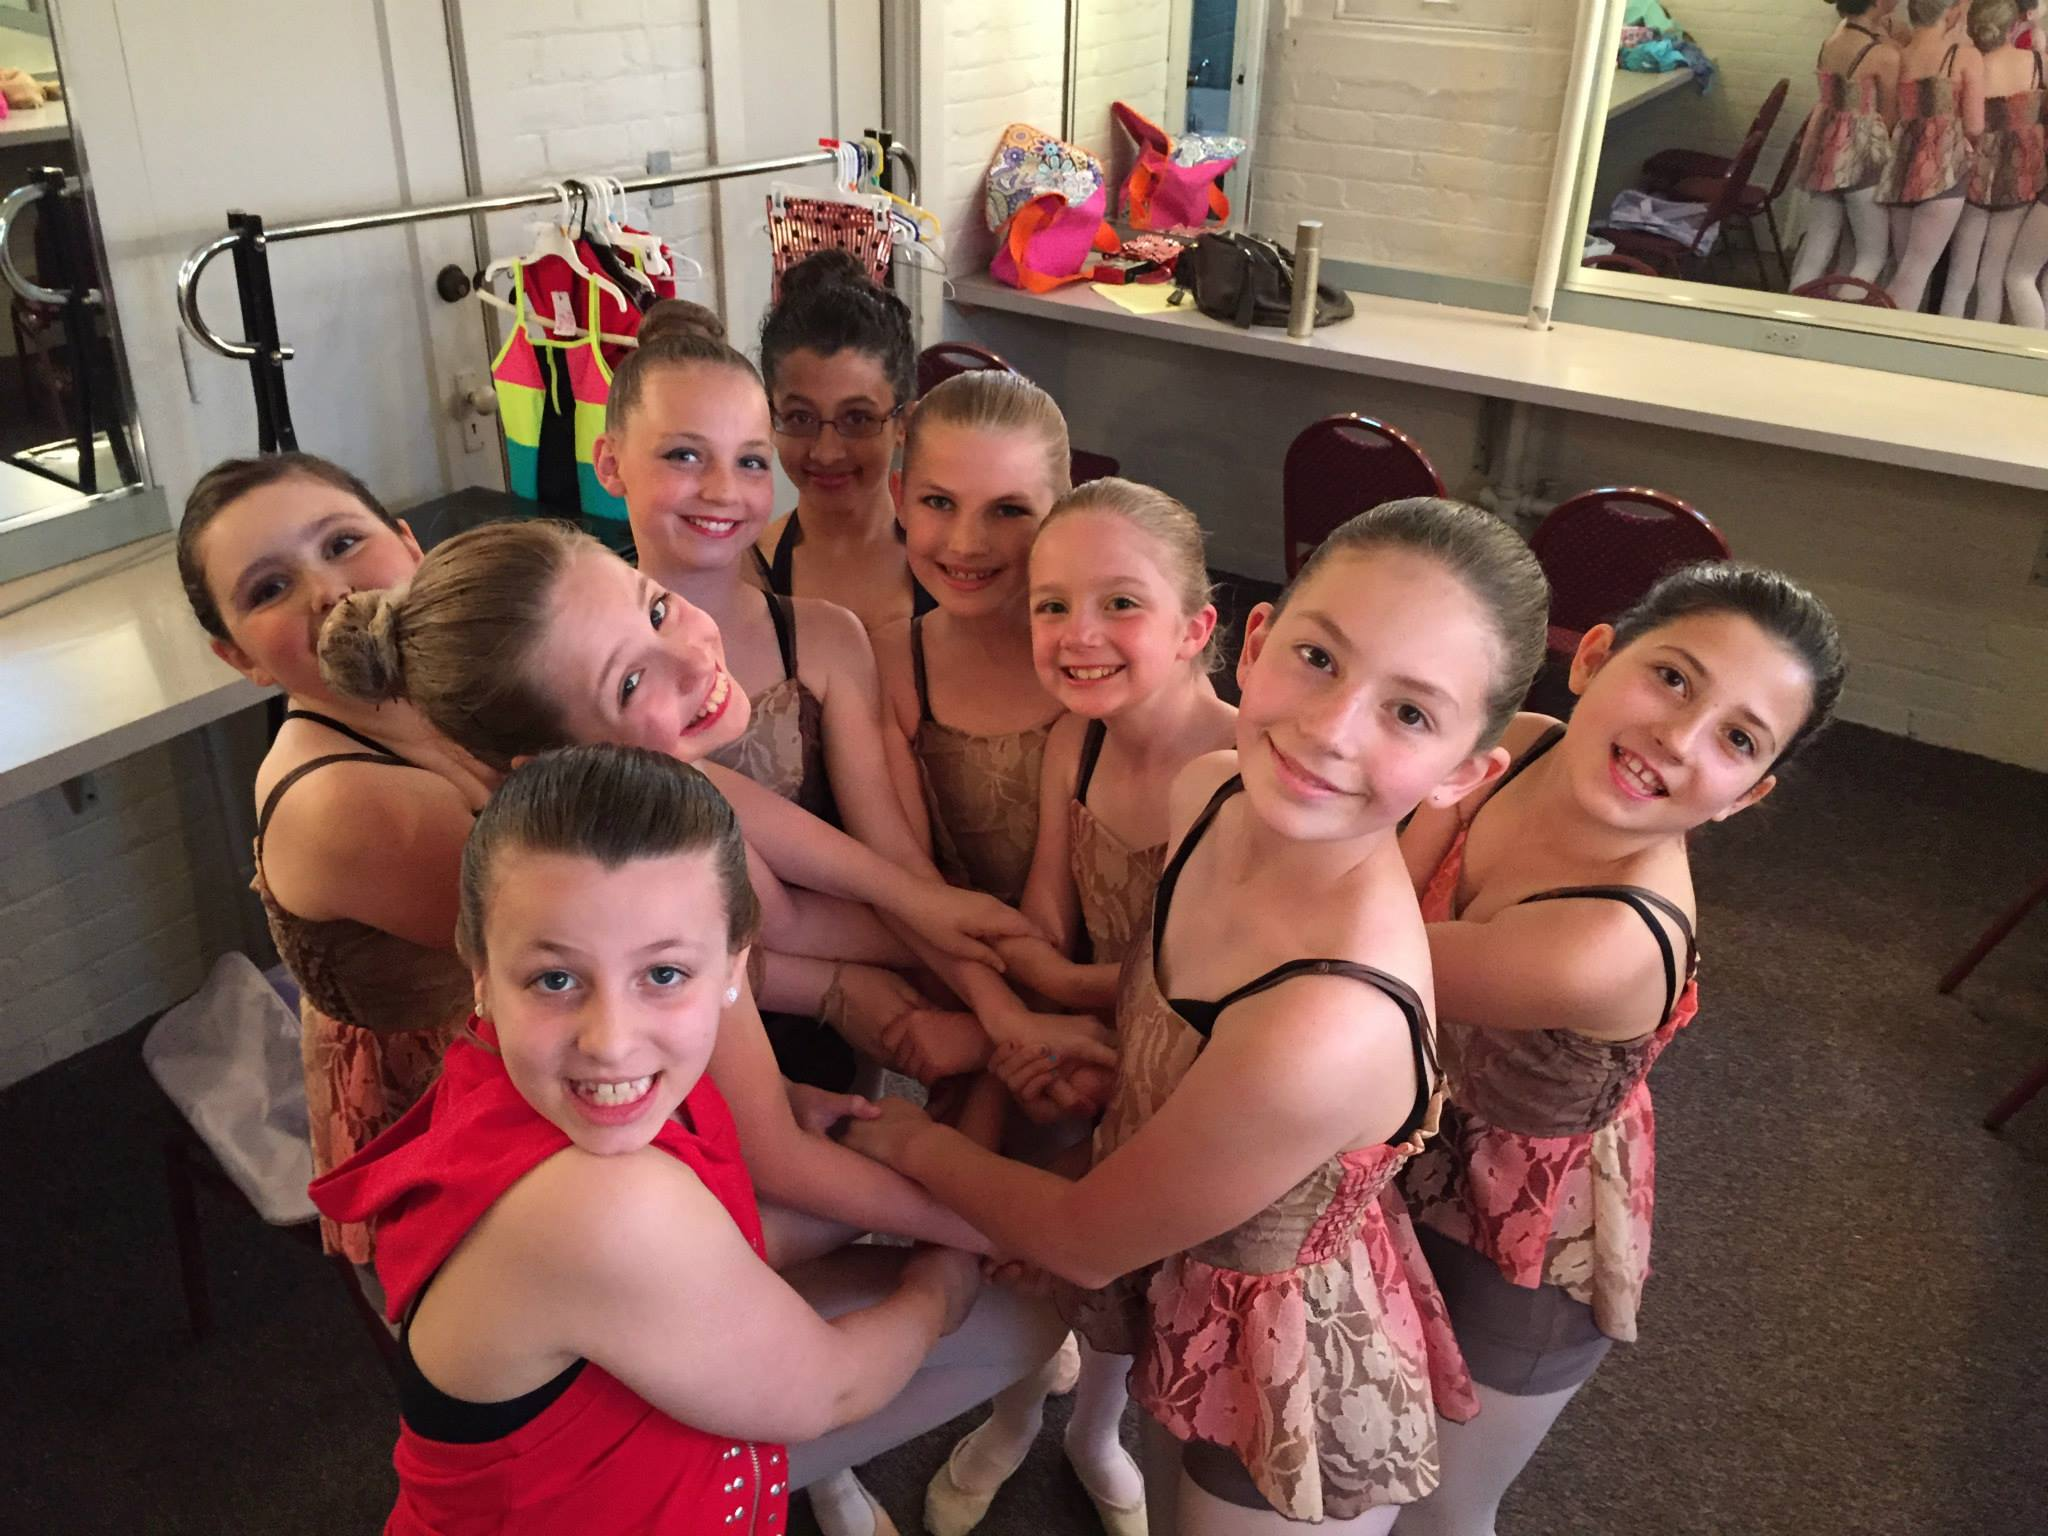 Dancers backstage at Hoyt Sherman